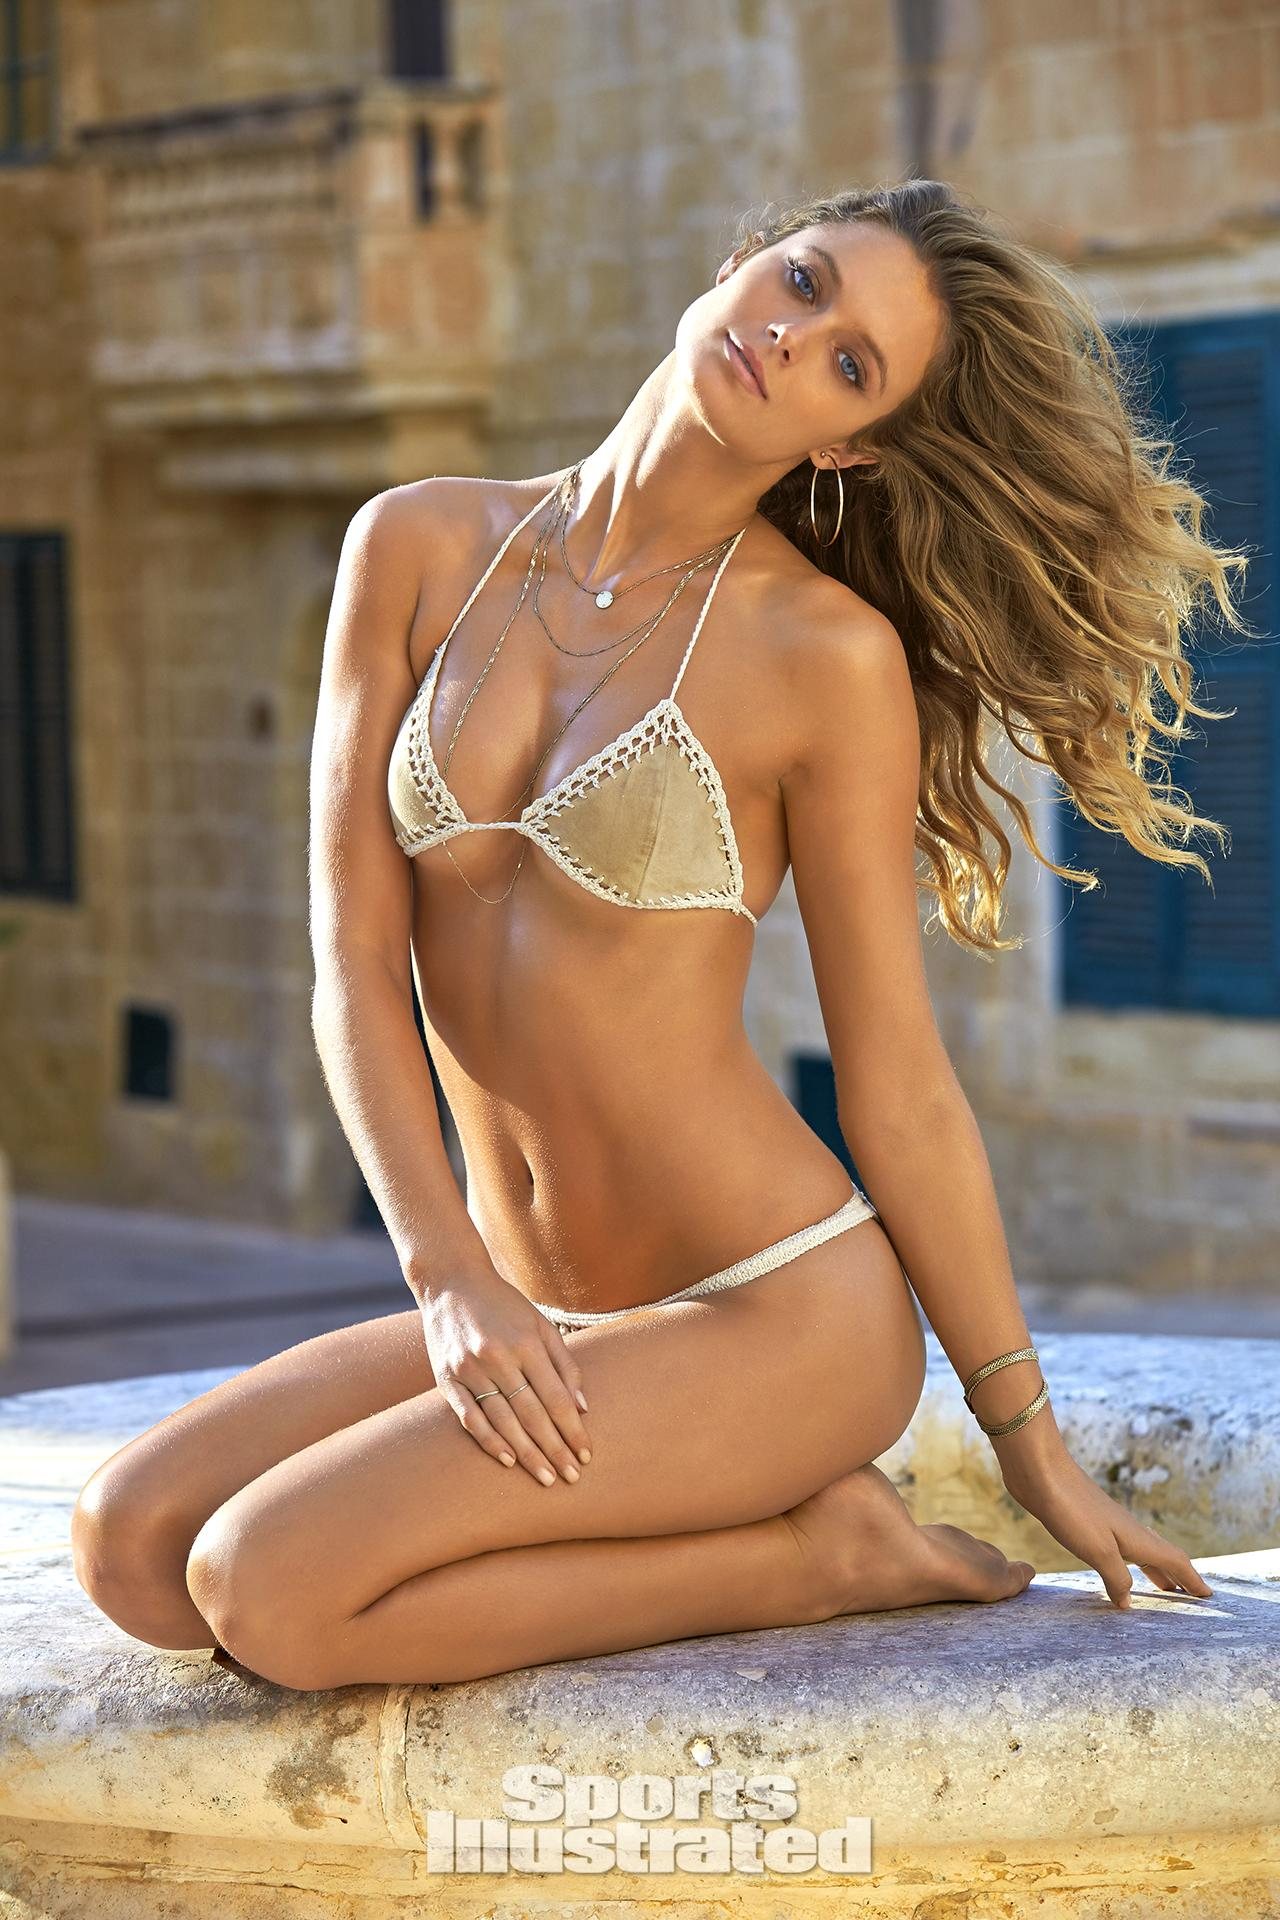 Kate Bock was photographed by Ben Watts in Malta. Swimsuit by Susan Holmes Swimwear.